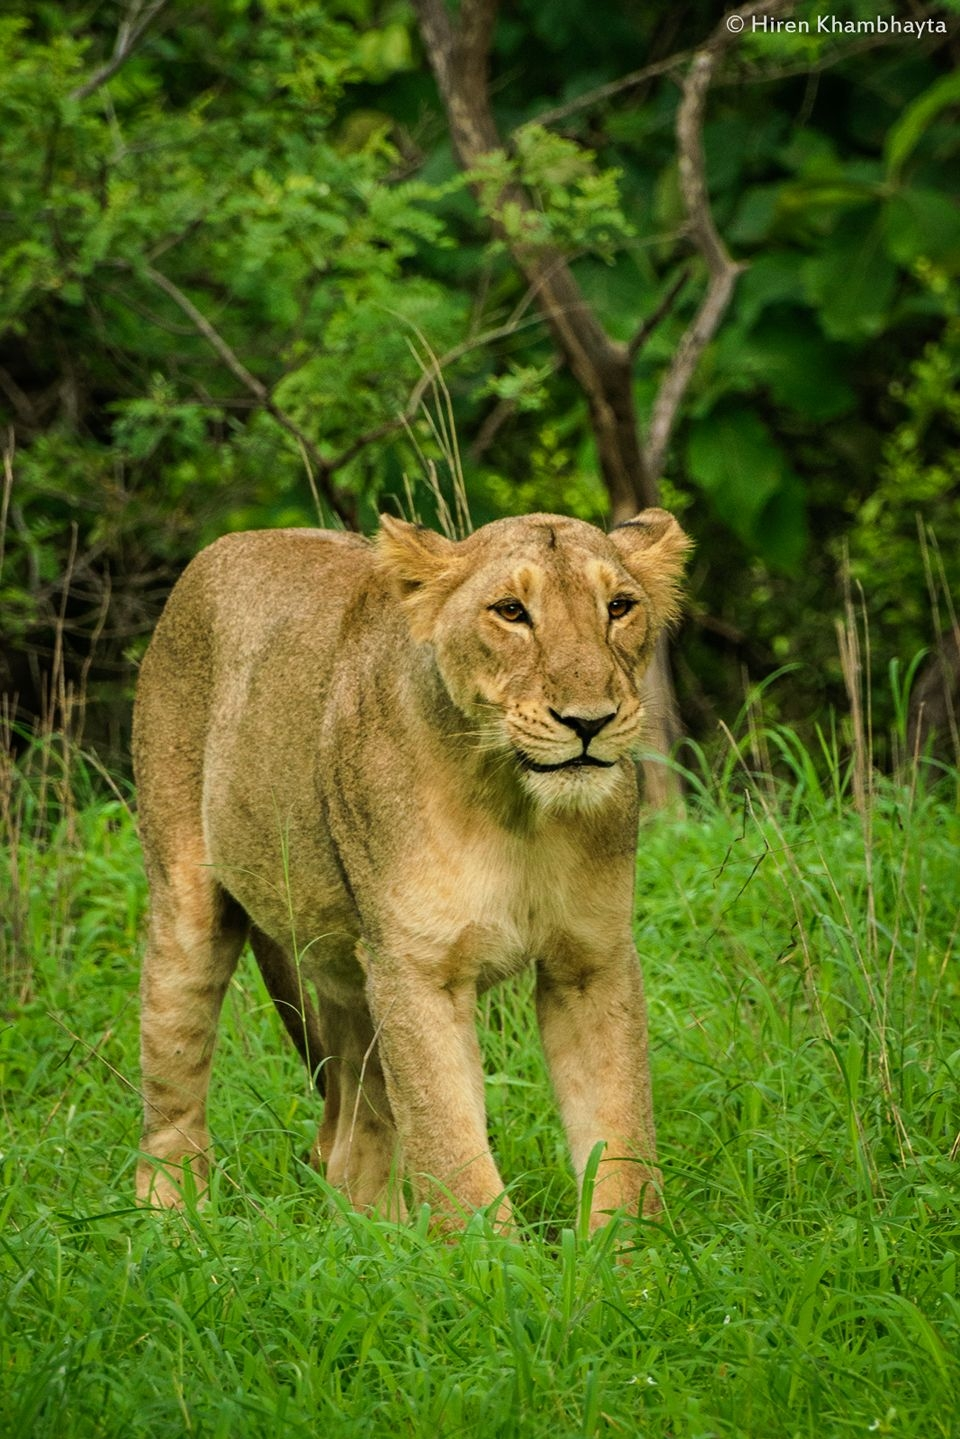 THE LIONS THE WITH VILLAGERS (MAALDHARIS) WHO LIVE TOGETHER IN GIR SEEM TO HAVE A SPECIAL UNDERSTANDING. IMAGE: HIREN KHAMBHAYTA